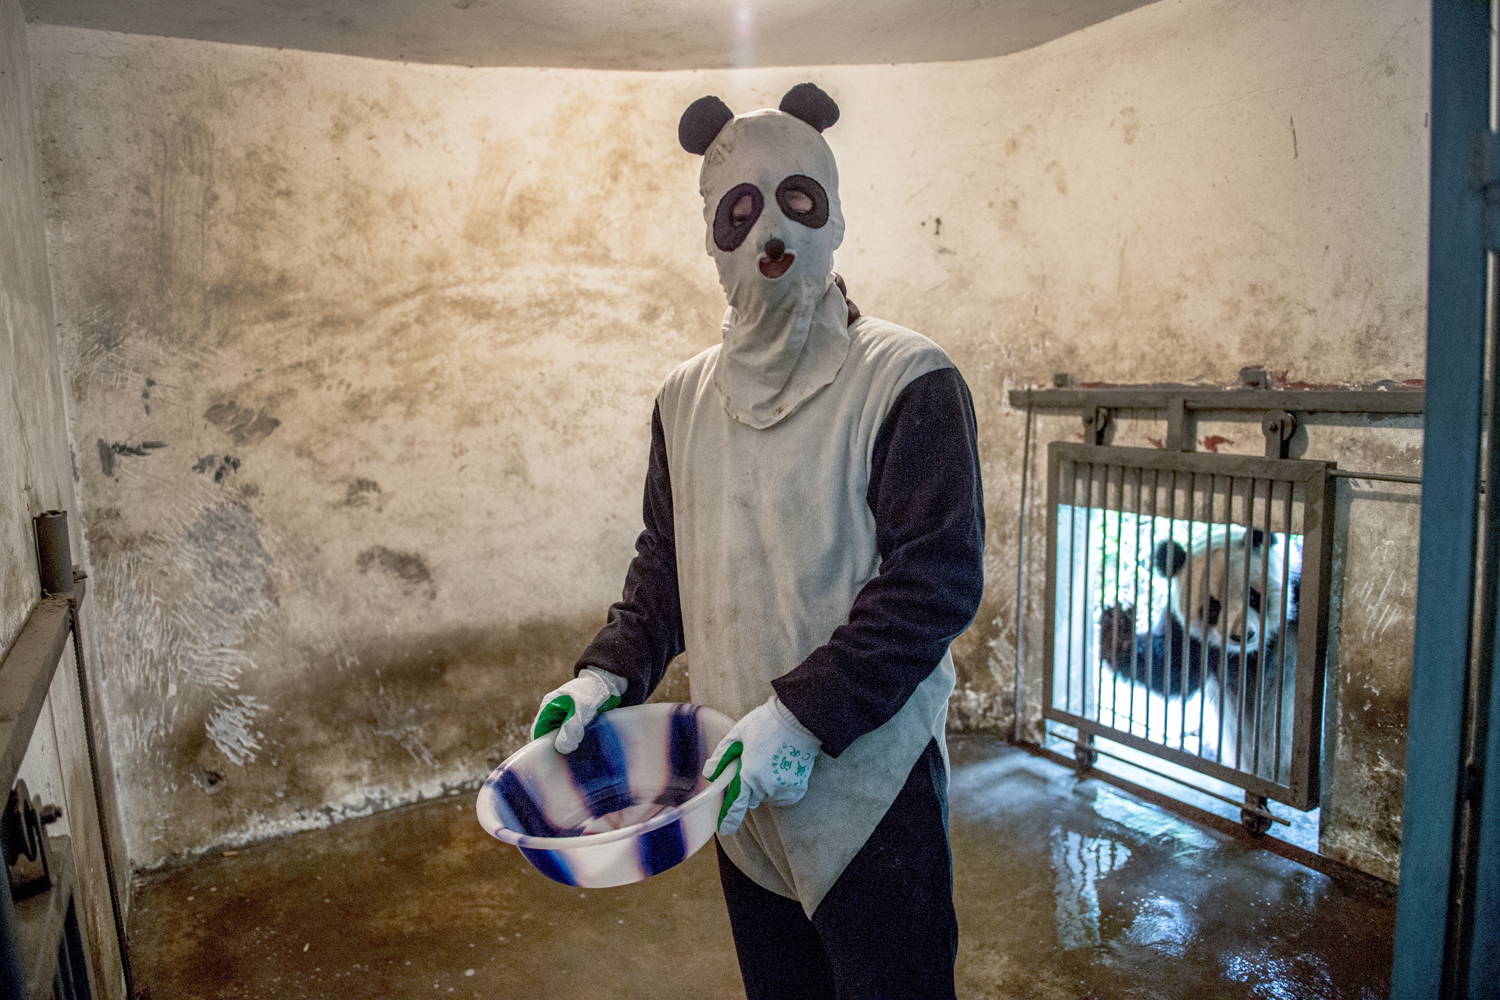 A costumed caretaker cleans a giant-panda enclosure while an inhabitant peers in.